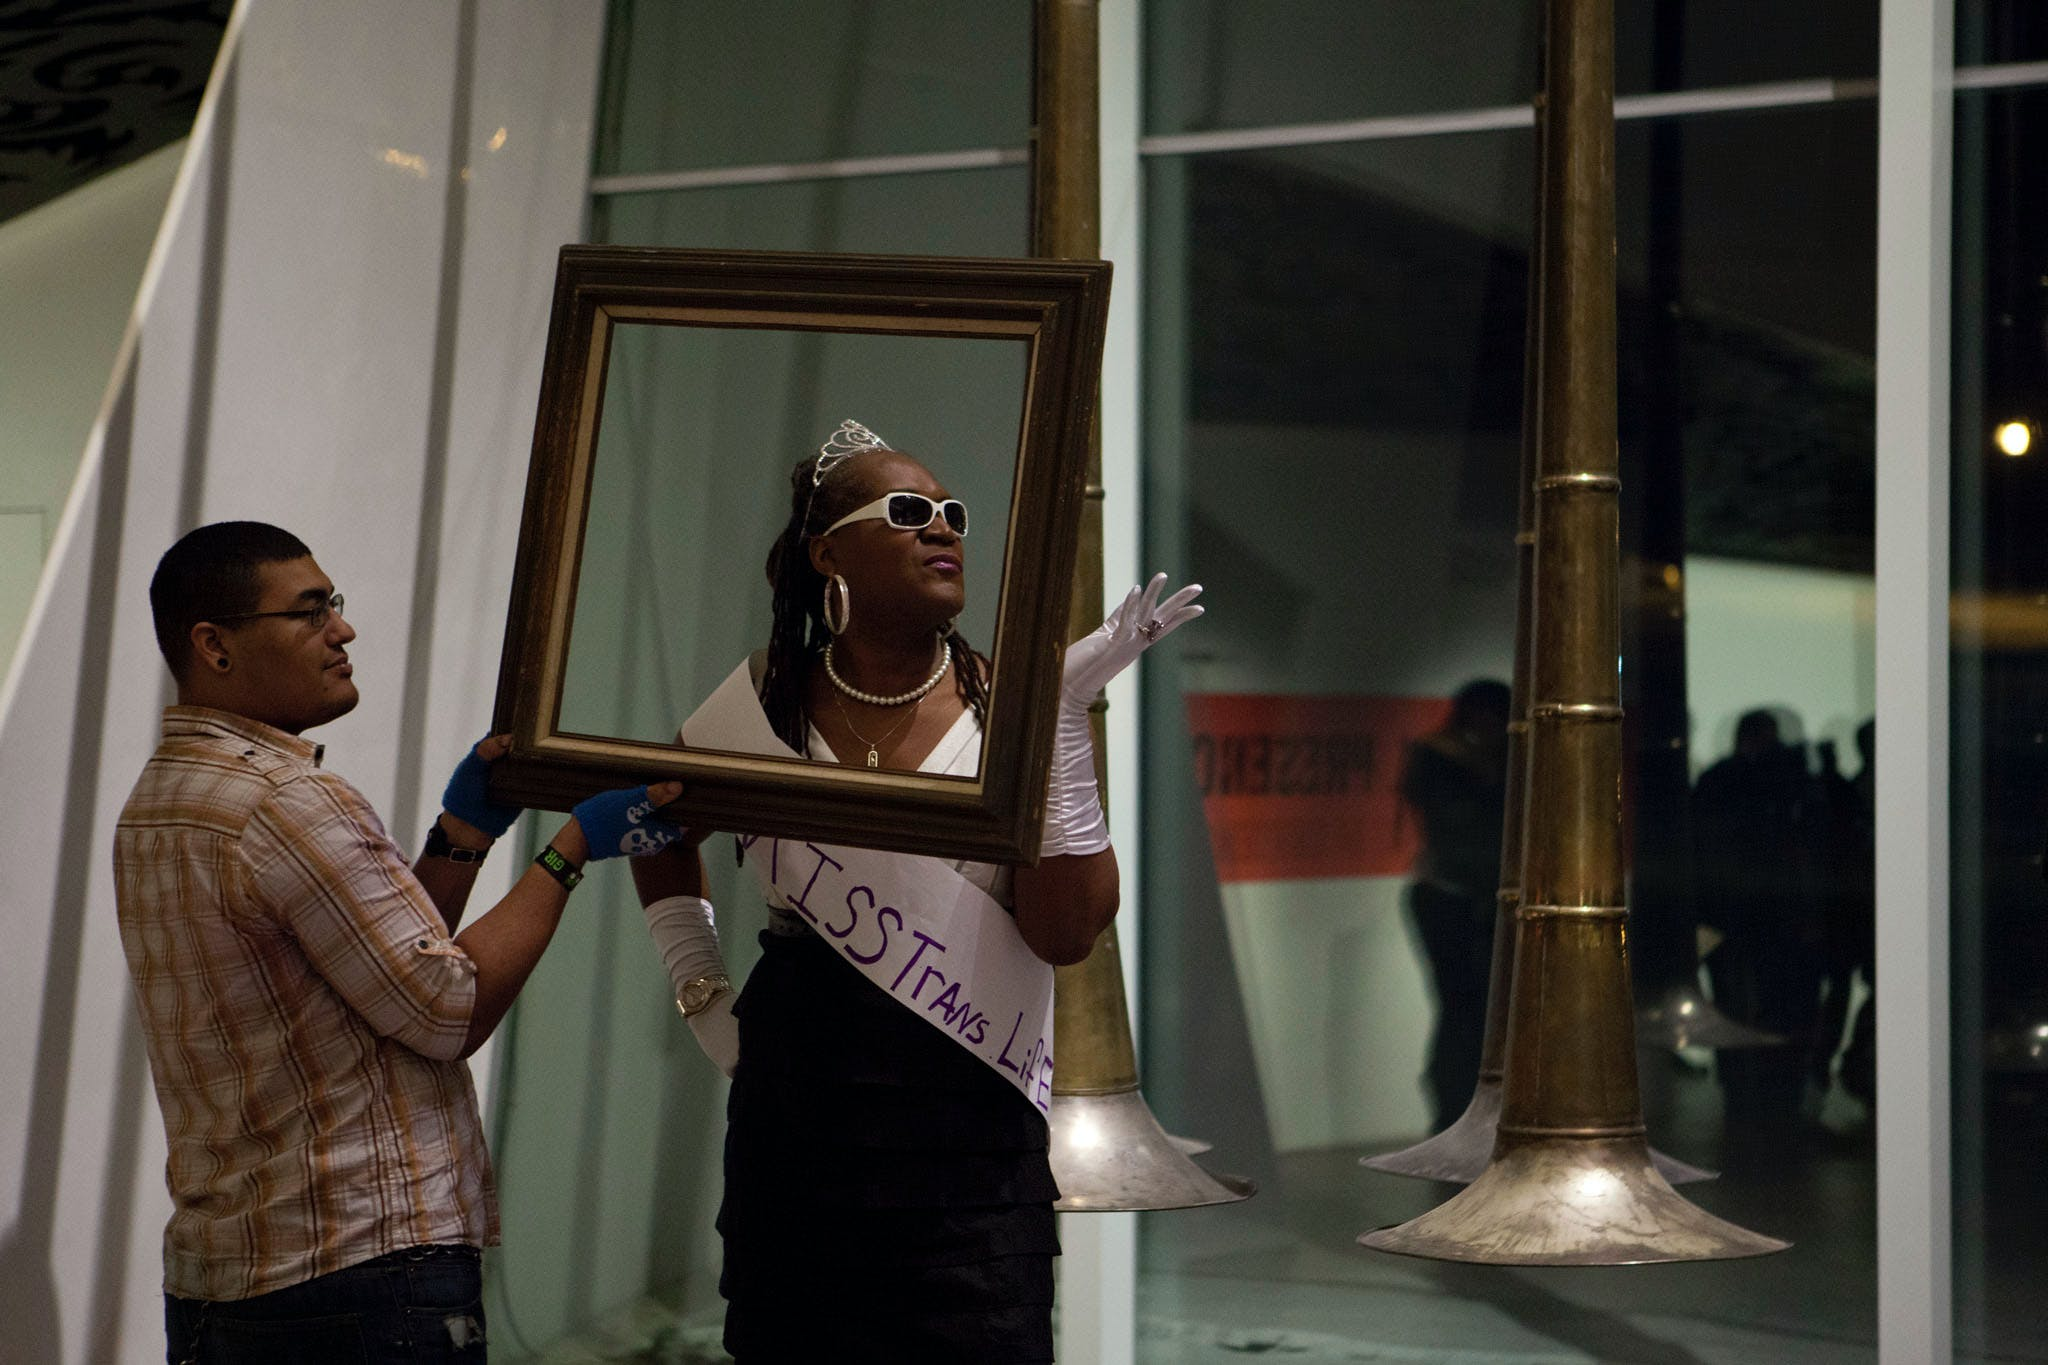 Holding Court: Andrea Jenkins, 2014; part of the exhibition Radical Presence: Black Performance in Contemporary Art, 2014